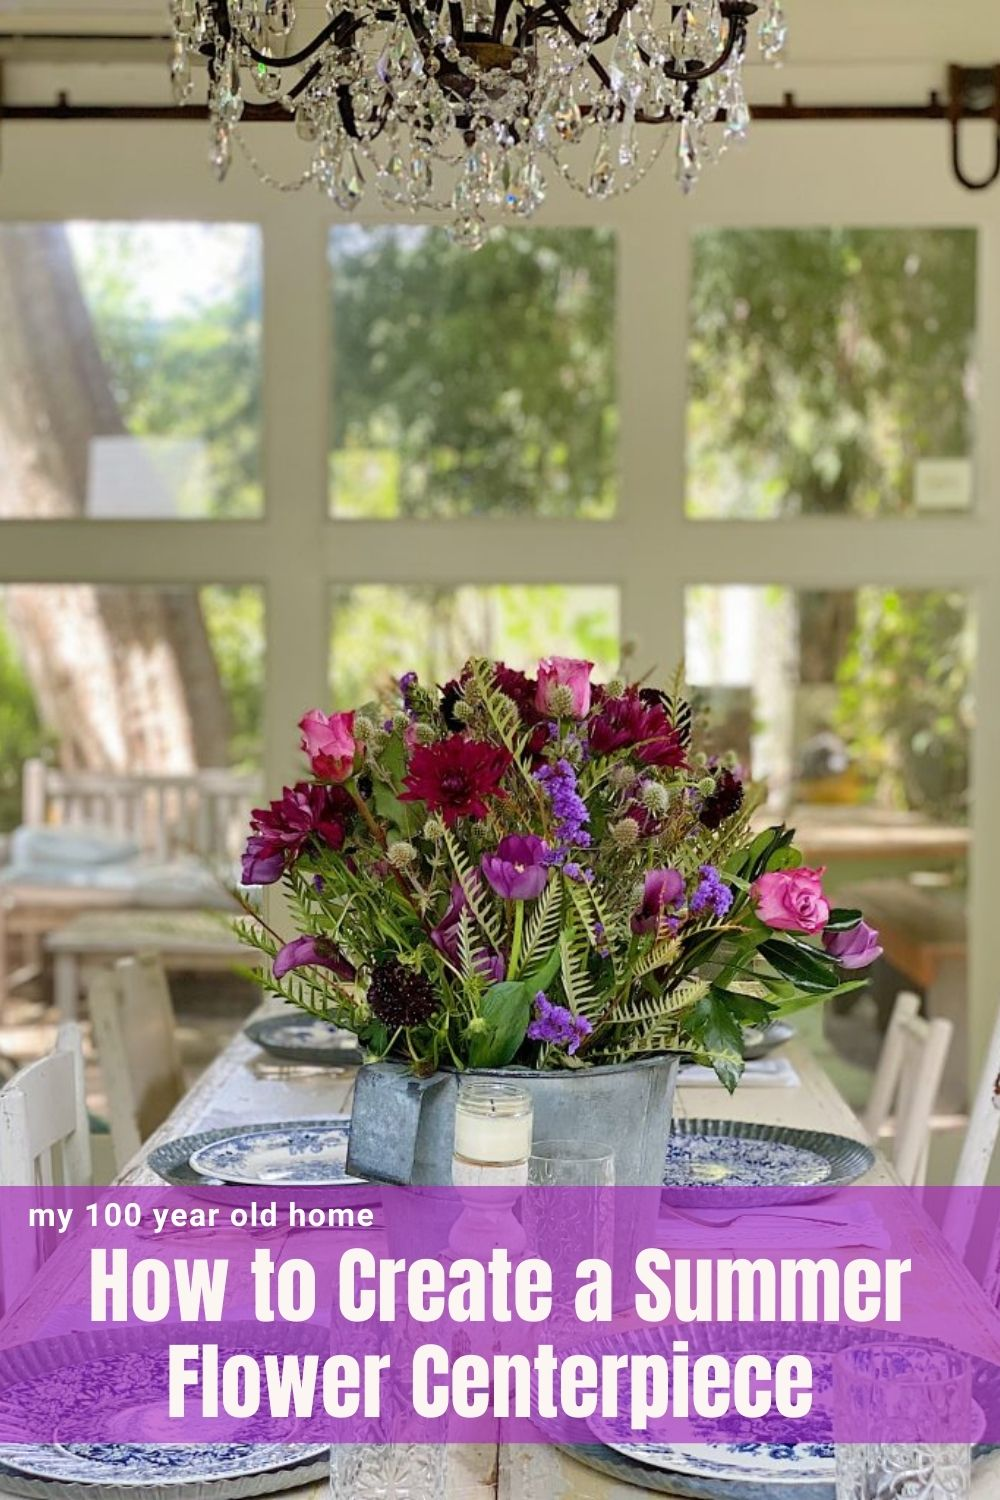 I love creating a summer flower centerpiece with grocery store flowers. They are inexpensive, very easy to make, and so colorful on your table!